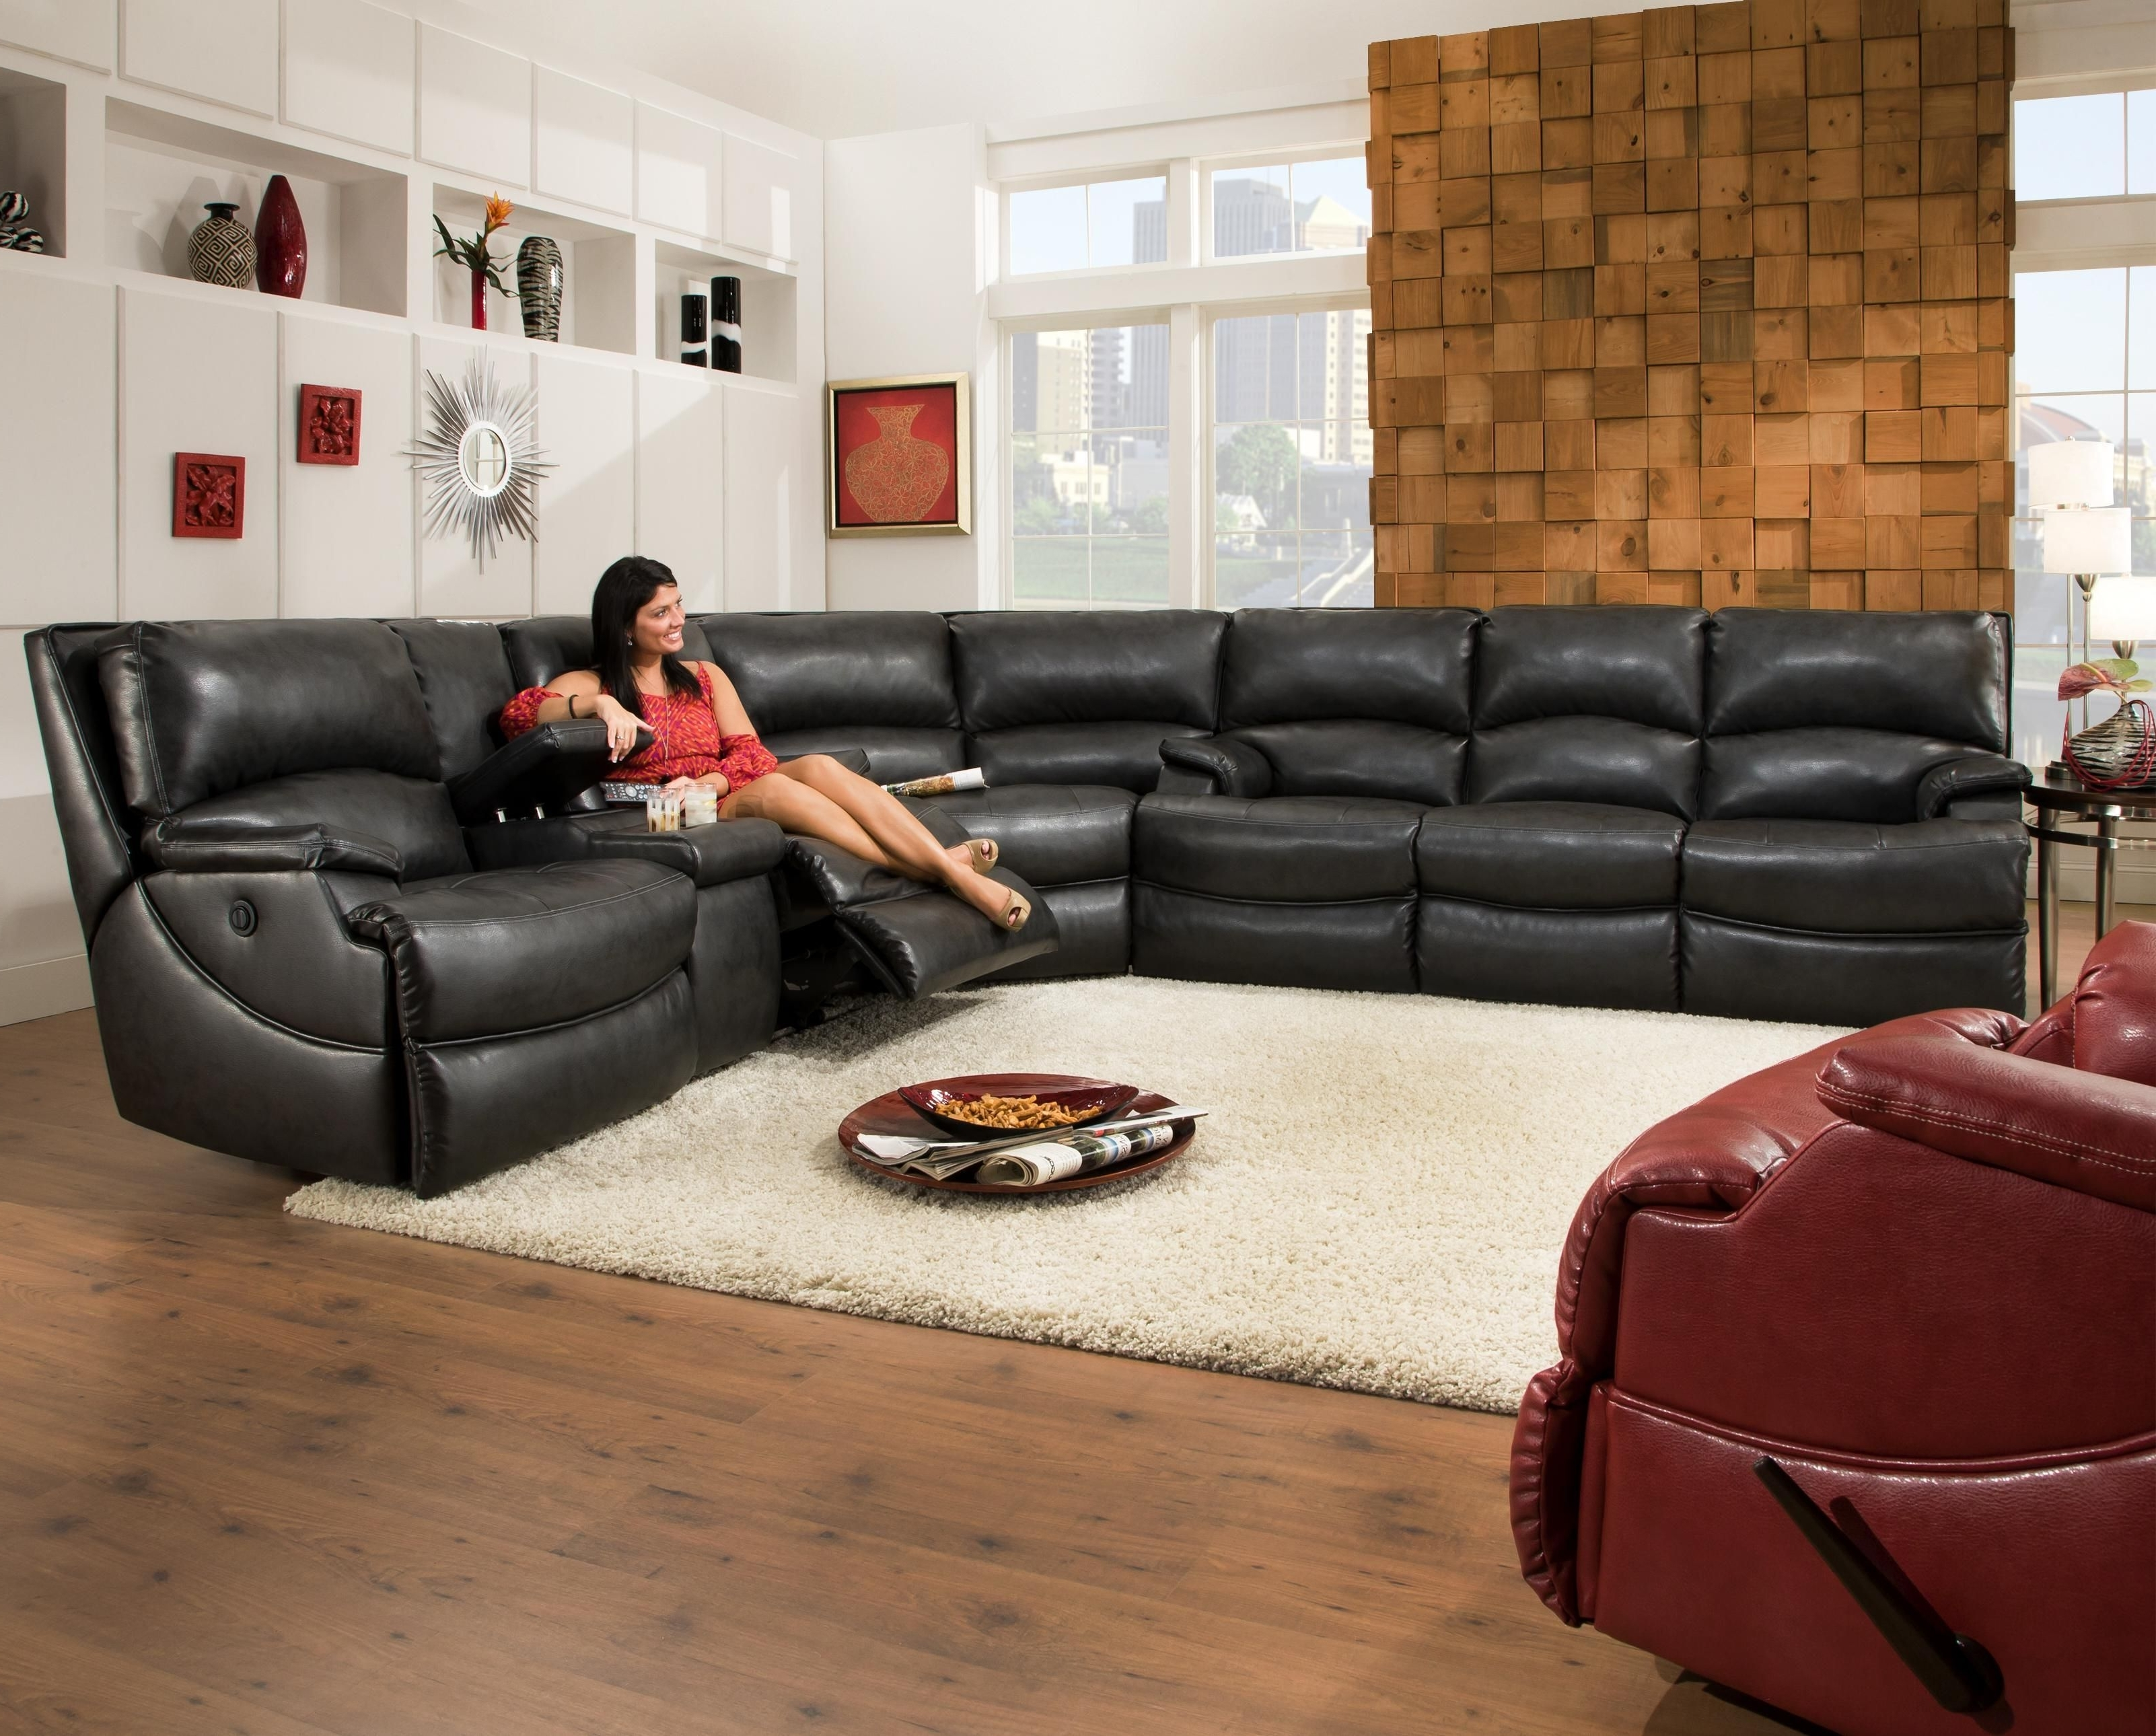 Fashionable Sectional Sofas With Consoles Pertaining To Southern Motion Shazam Six Seat Reclining Sectional Sofa With Cup (View 7 of 20)